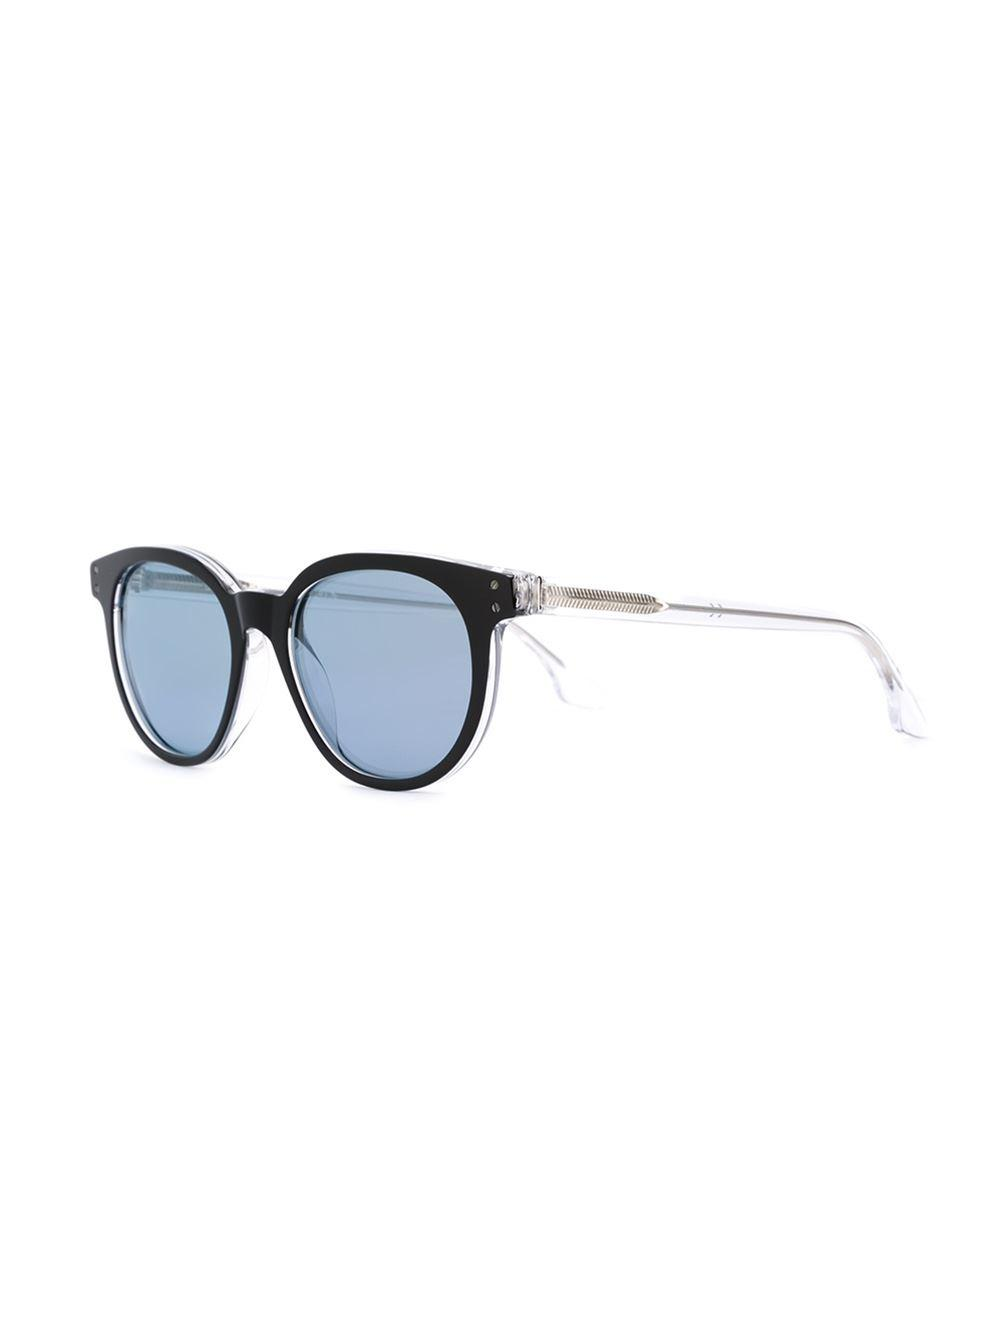 Cheap Sale Best Seller Outlet Supply Retrosuperfuture 'Riviera 44RU' sunglasses Footlocker Online Sale Pay With Paypal xLlfC